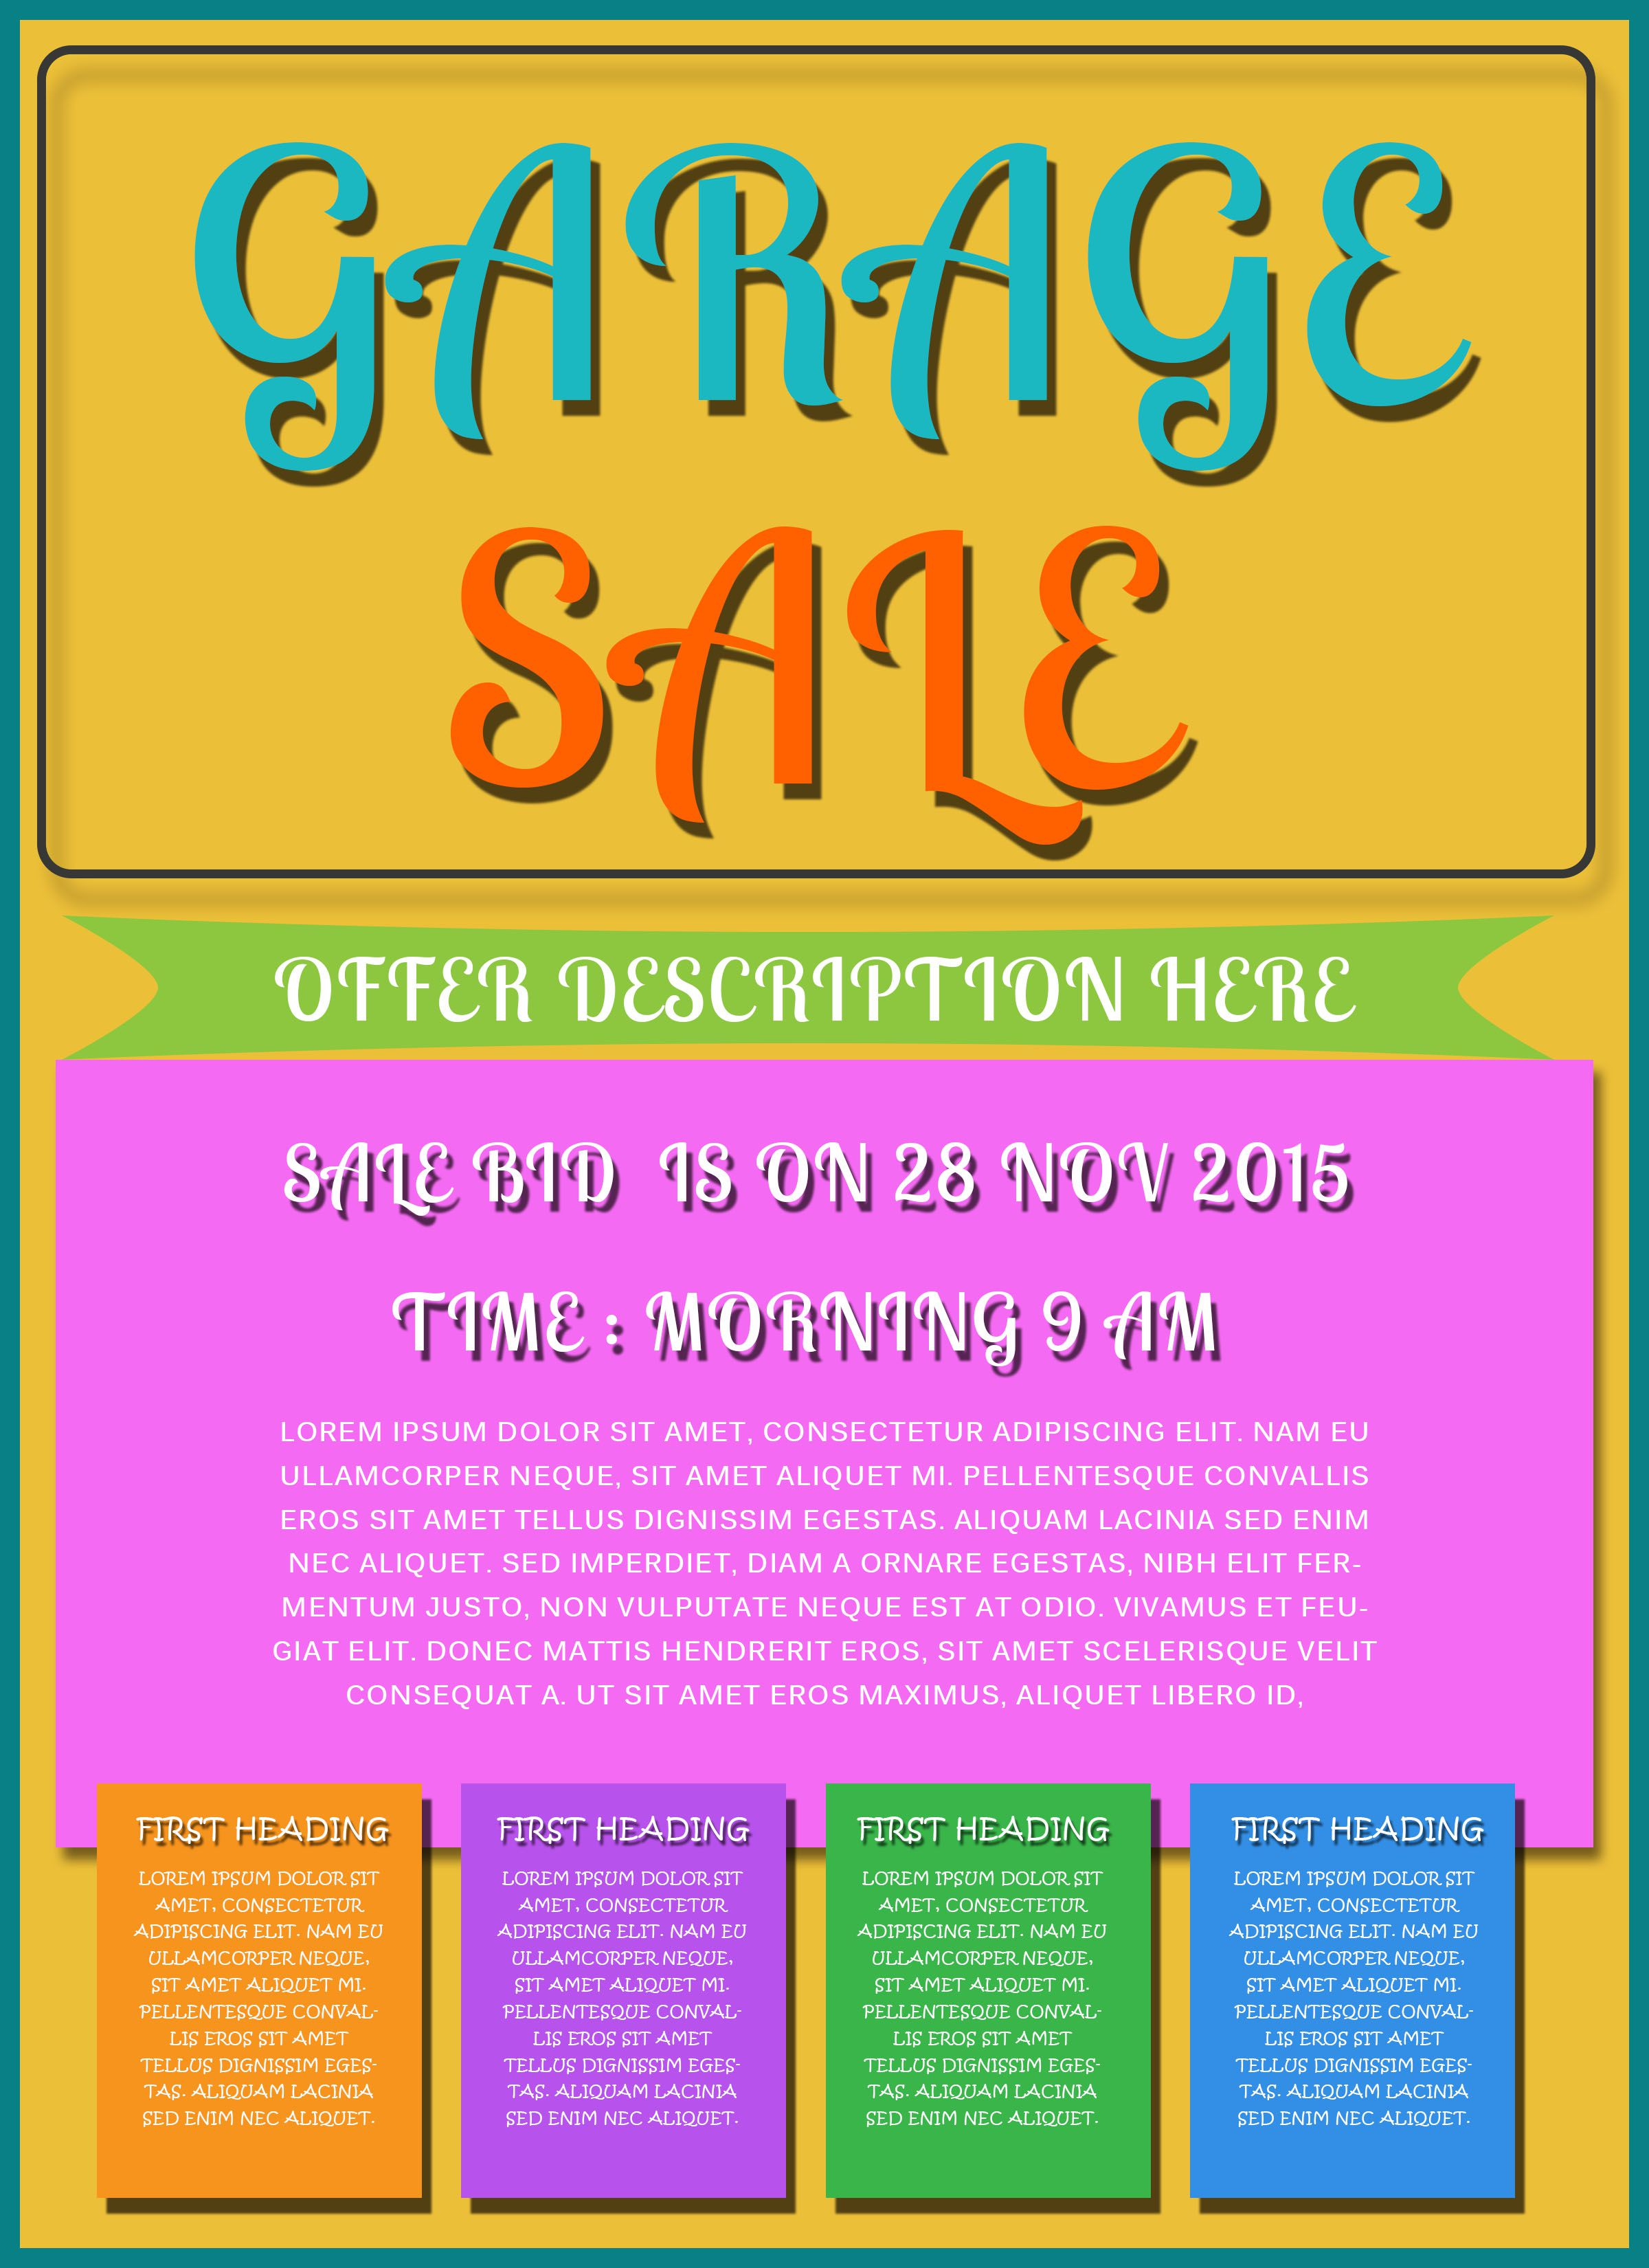 Free Printable Garage Sale Flyers Templates  Attract More. Free Online Printable Christmas Cards. Free Modern Fonts. Word Business Card Template Free. Powerpoint Floor Plan Template. Excel Project Schedule Template. Easiest Graduate Schools To Get Into. Unique Customs Invoice Template. Sample Letter Of Recommendation For Graduate School